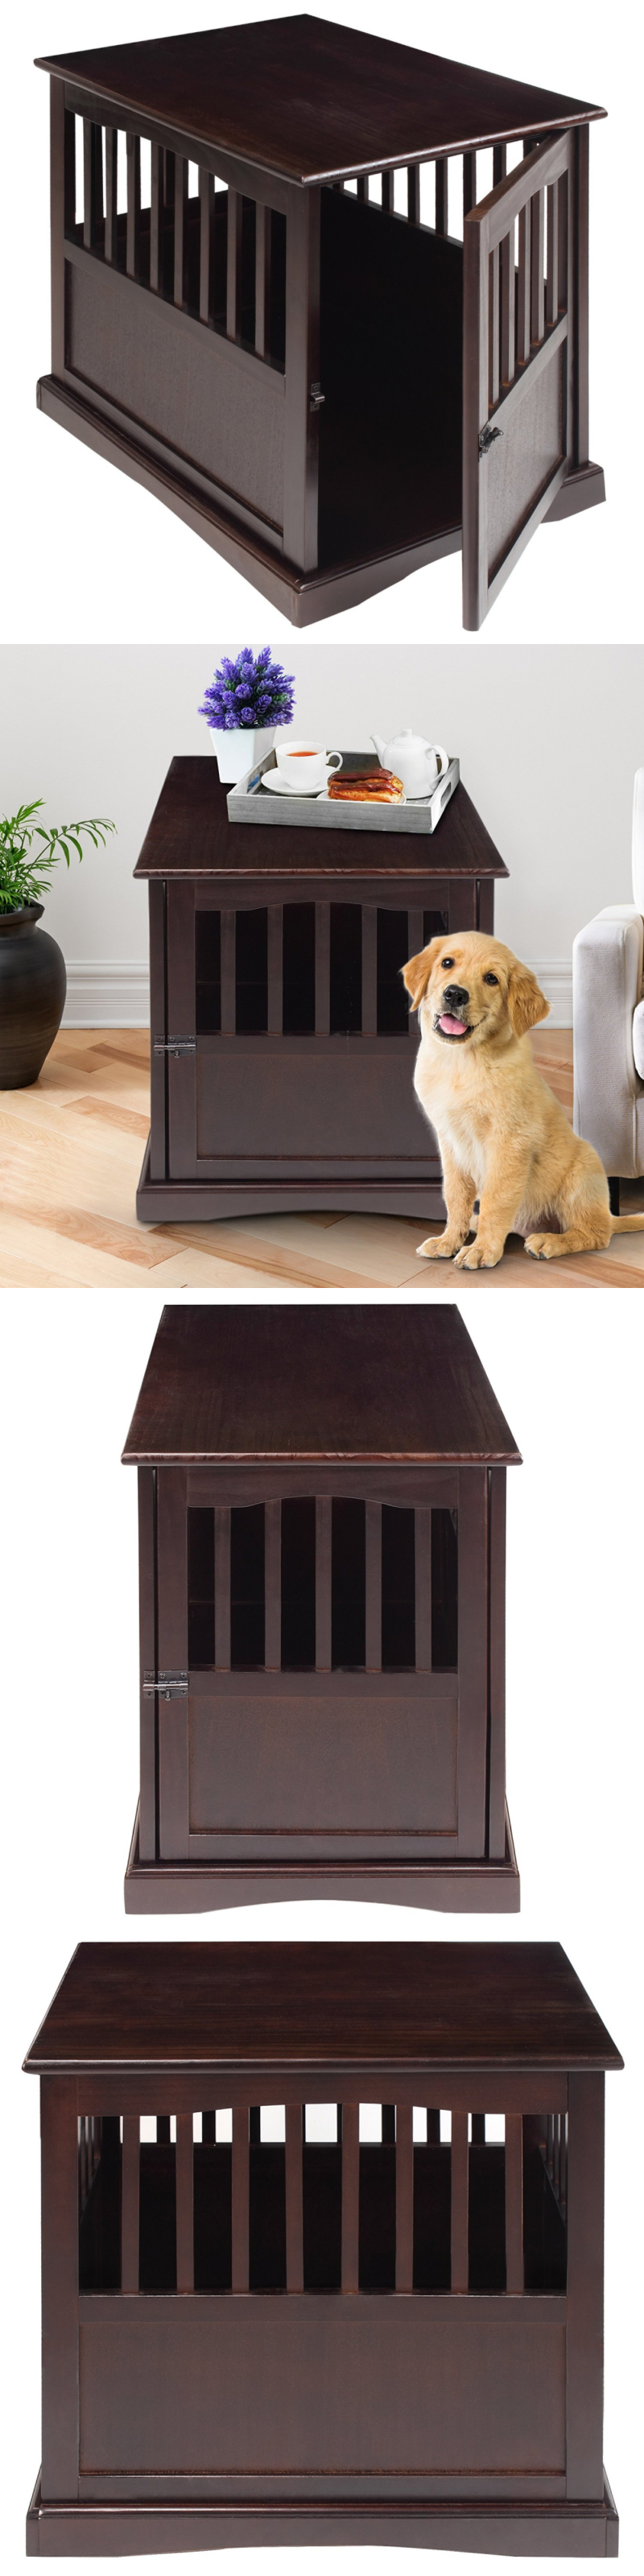 Exceptional Cages And Crates 121851: Casual Home Pet Crate End Table, 24 Inch